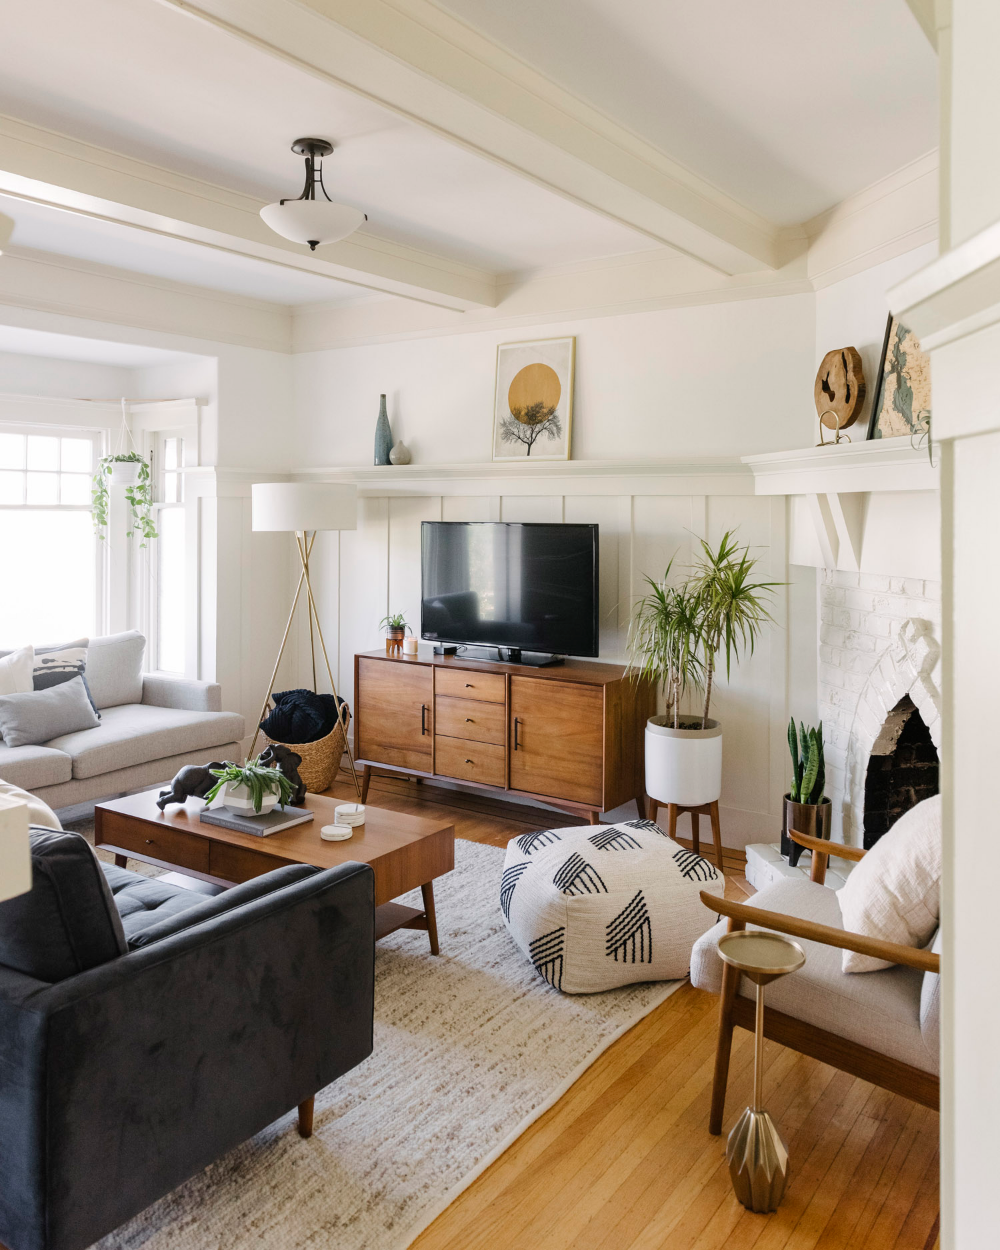 Design Crew A Fresh Start With Mid Century Style In A San Francisco Walk Up Front Main In 2020 Home Living Room Home Home Decor